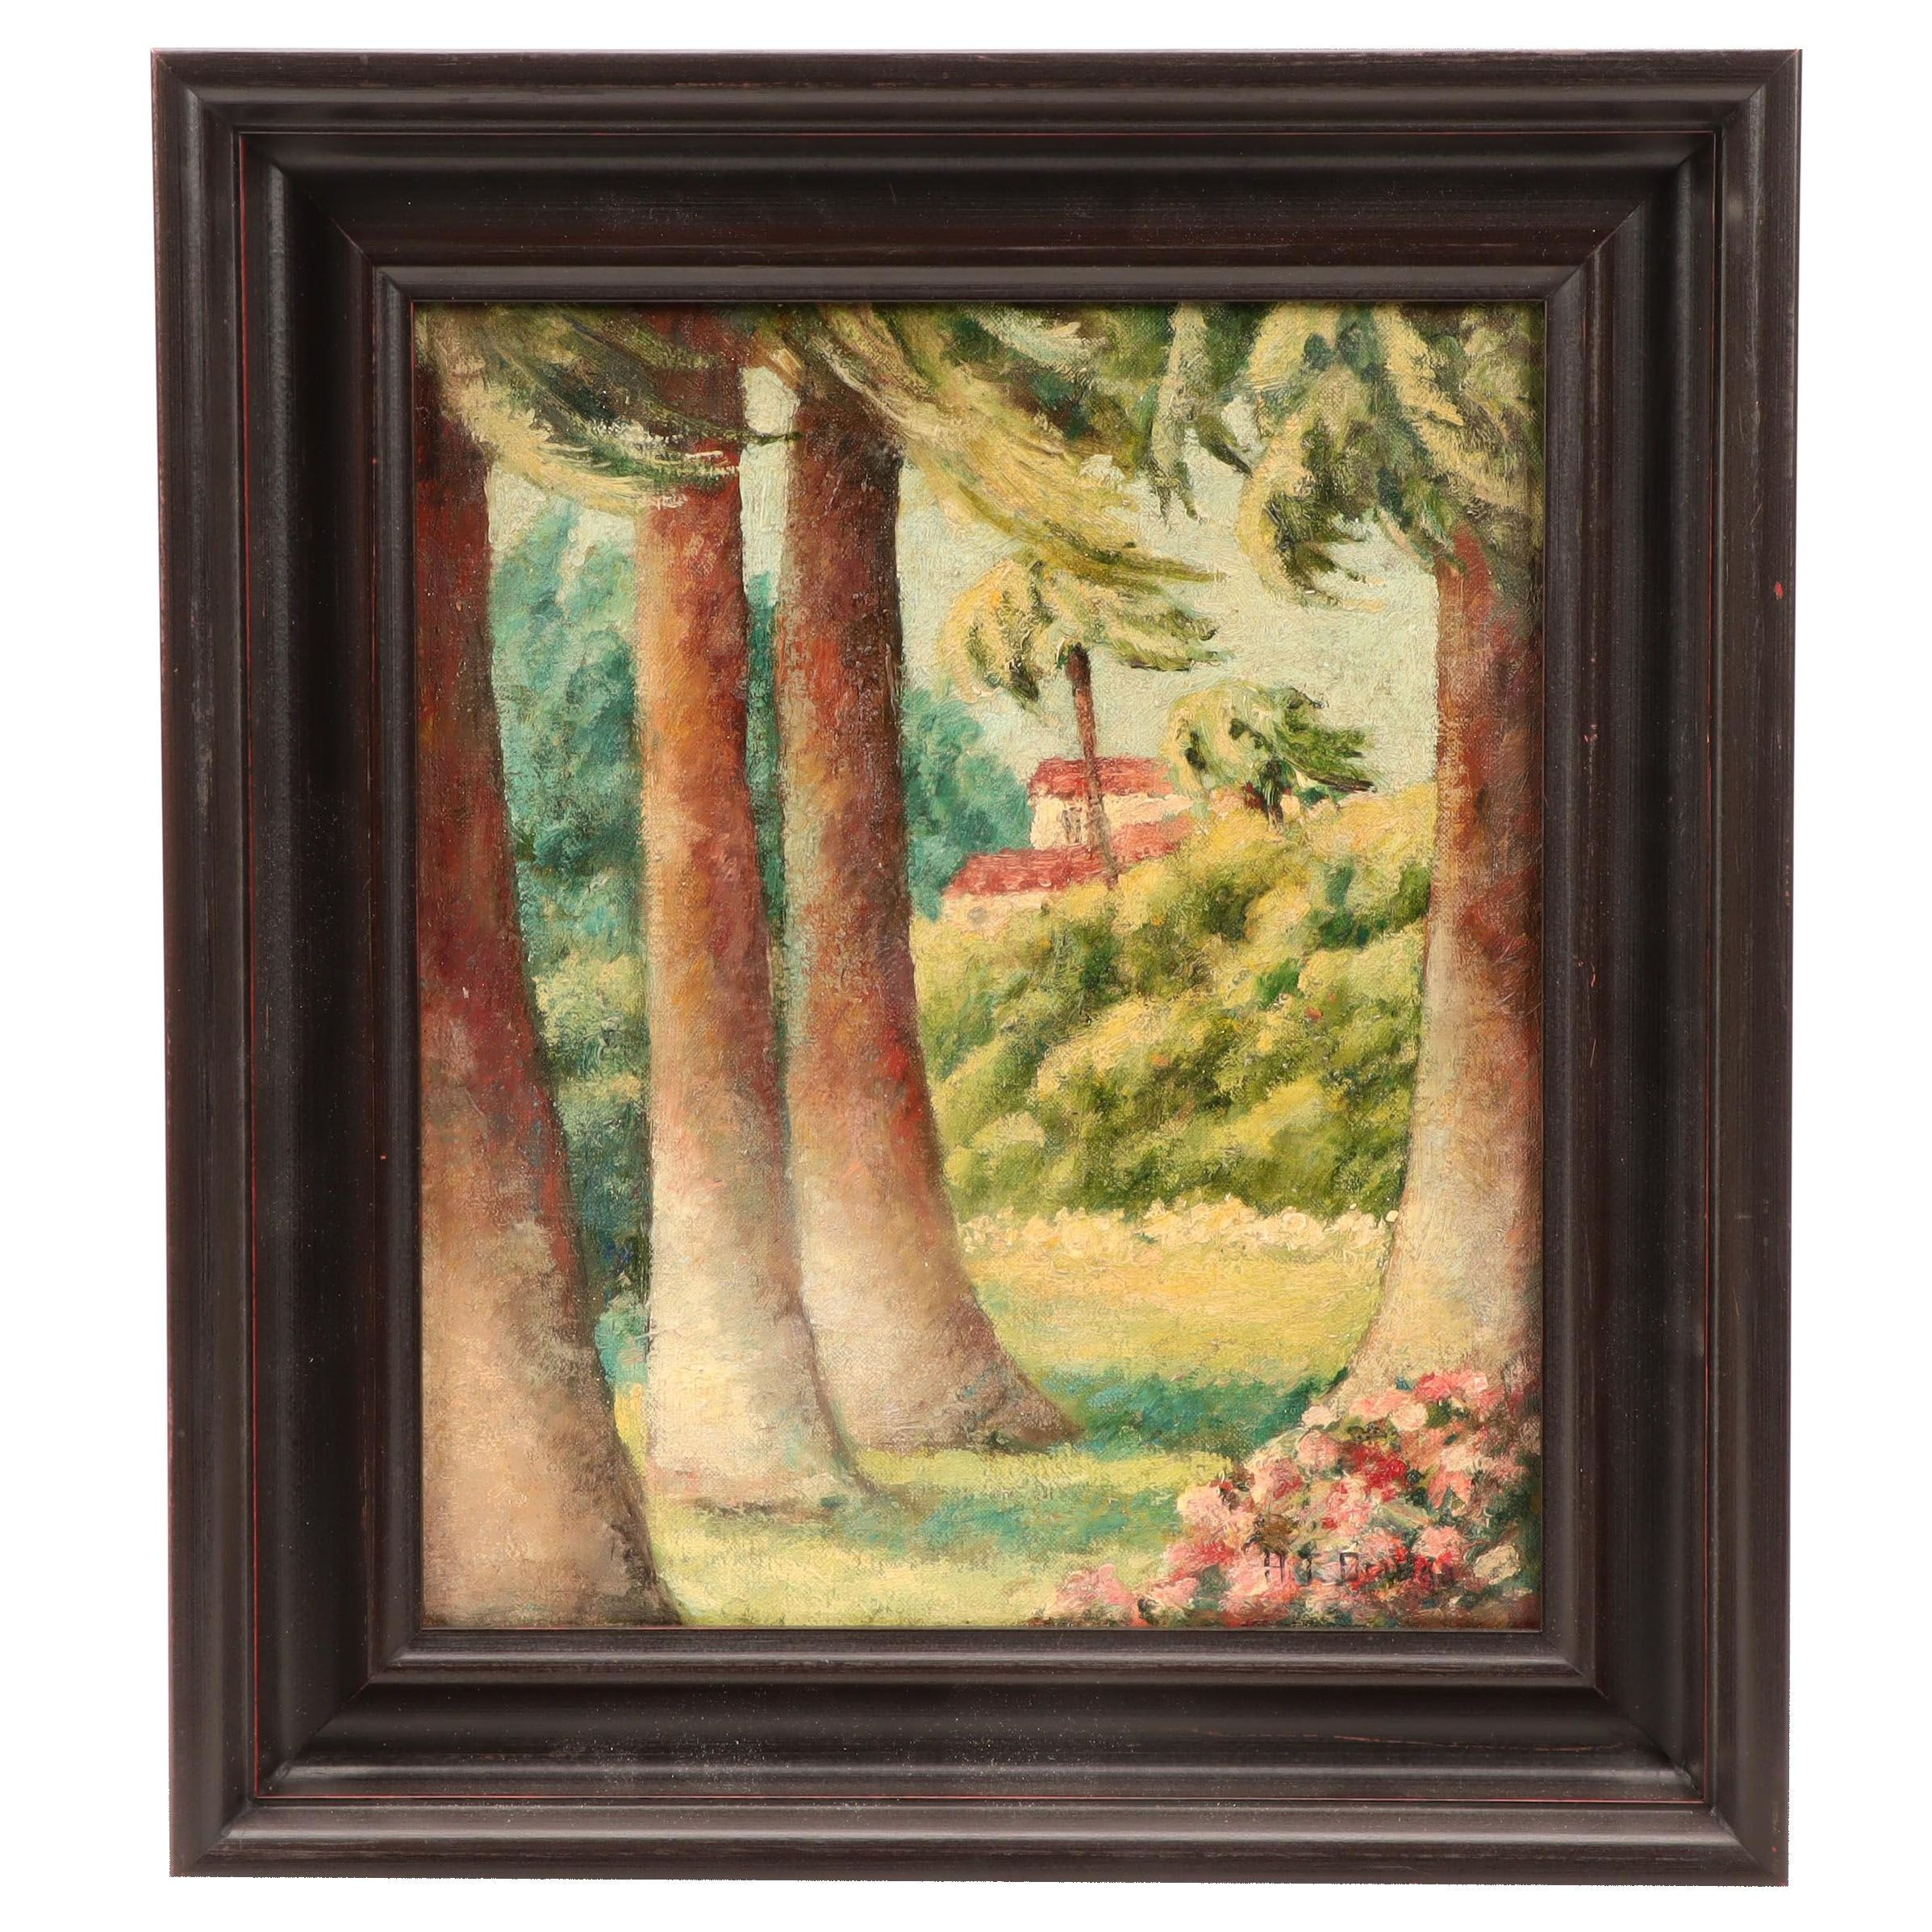 Helen Thomas Dranga Hawaiian Landscape Oil Painting